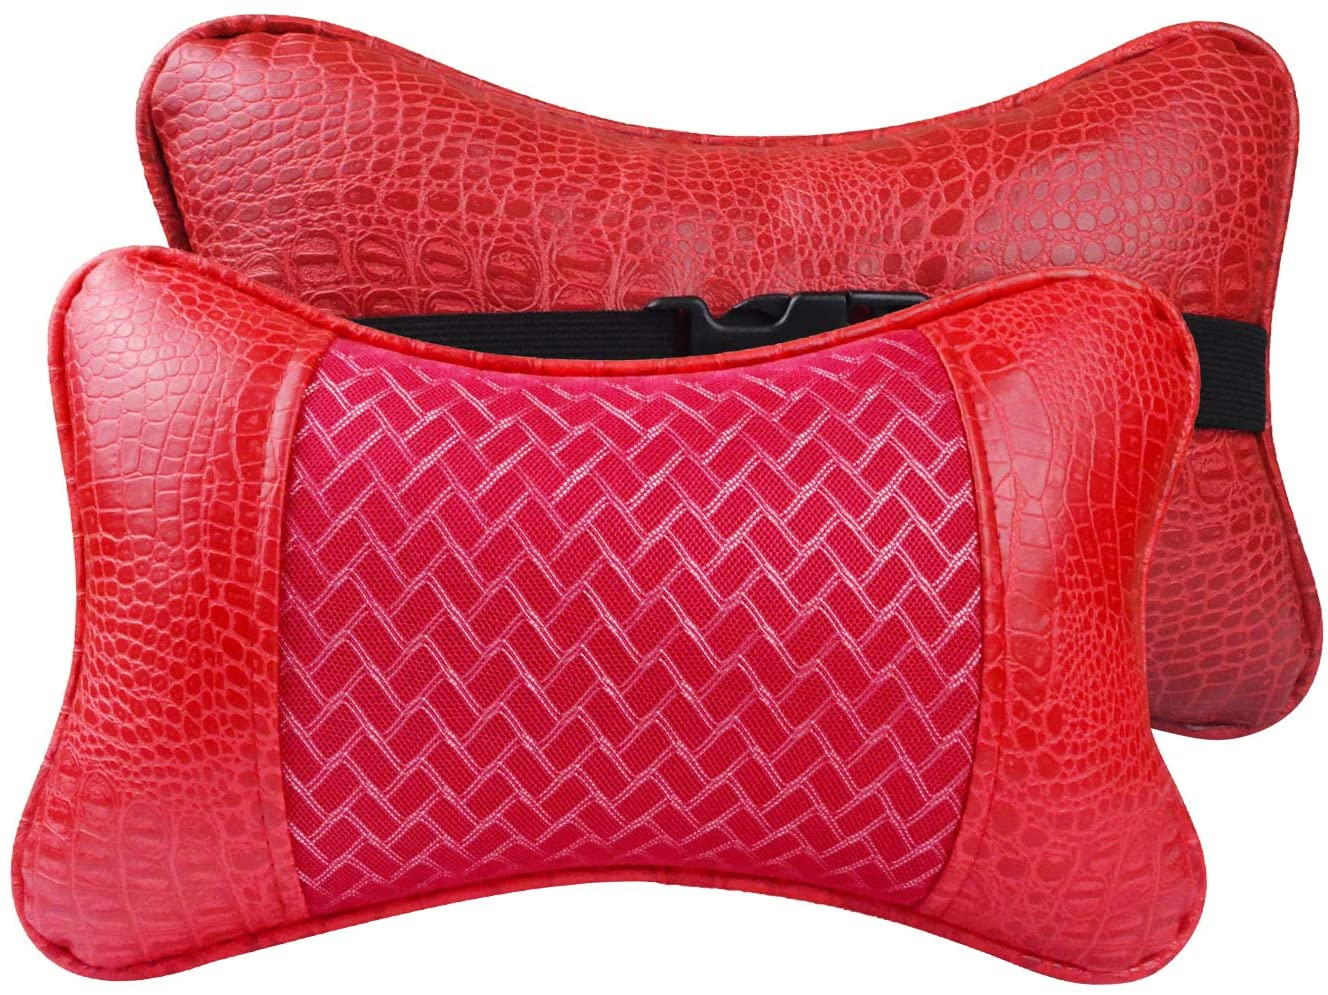 YIHO Car Neck Support Pillow Leather Head-Rest Cushion to Relief Cervical Shoulder Pain Issues for Universal Driver & Passenger Seat in Travel or Office Chair (Red Silver)